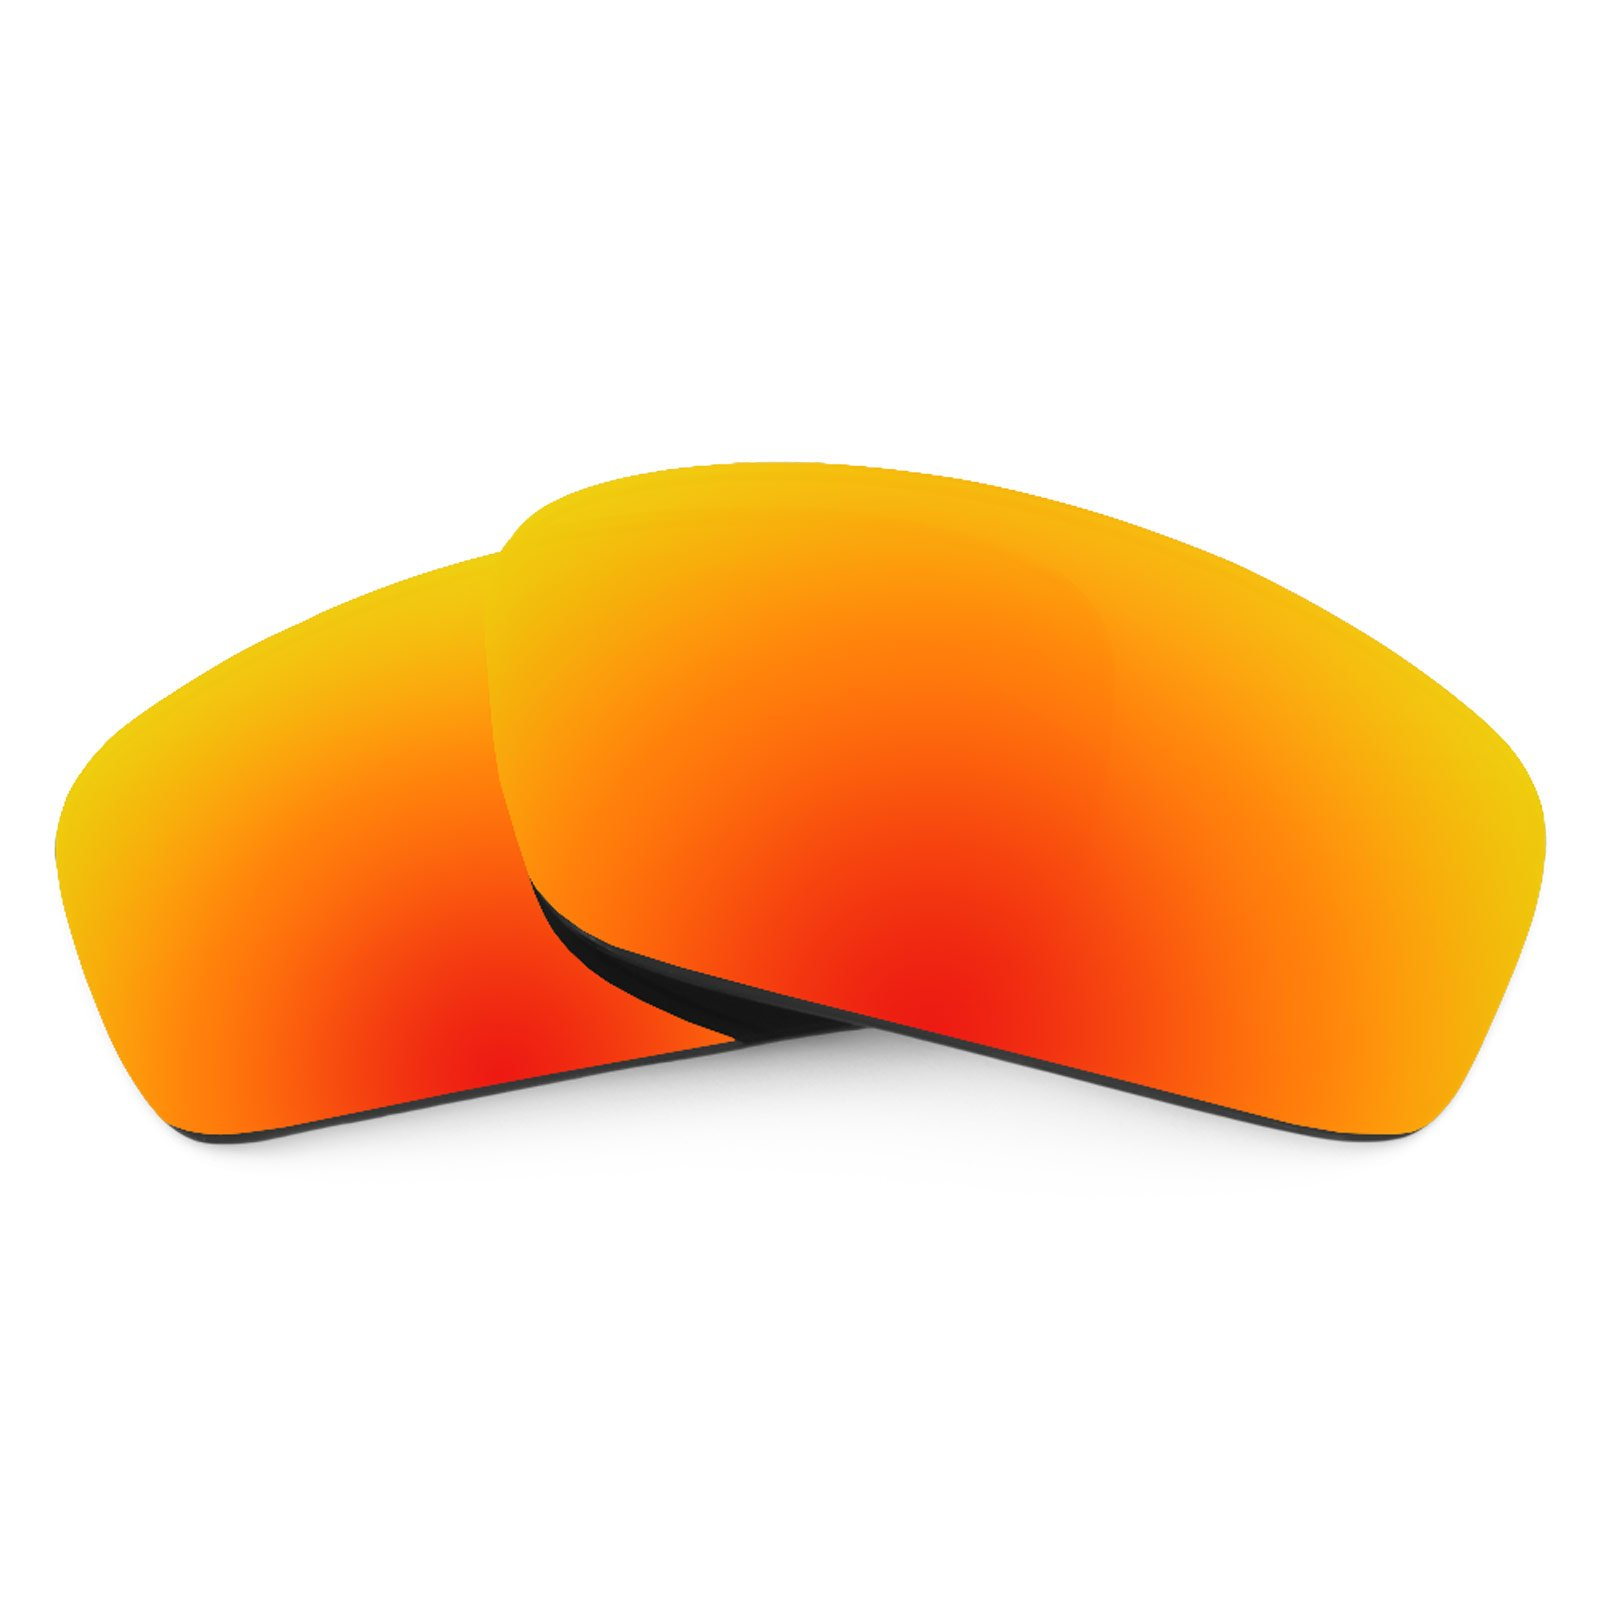 Revant Replacement Lenses for Oakley Splinter, Polarized, Fire Red MirrorShield by Revant